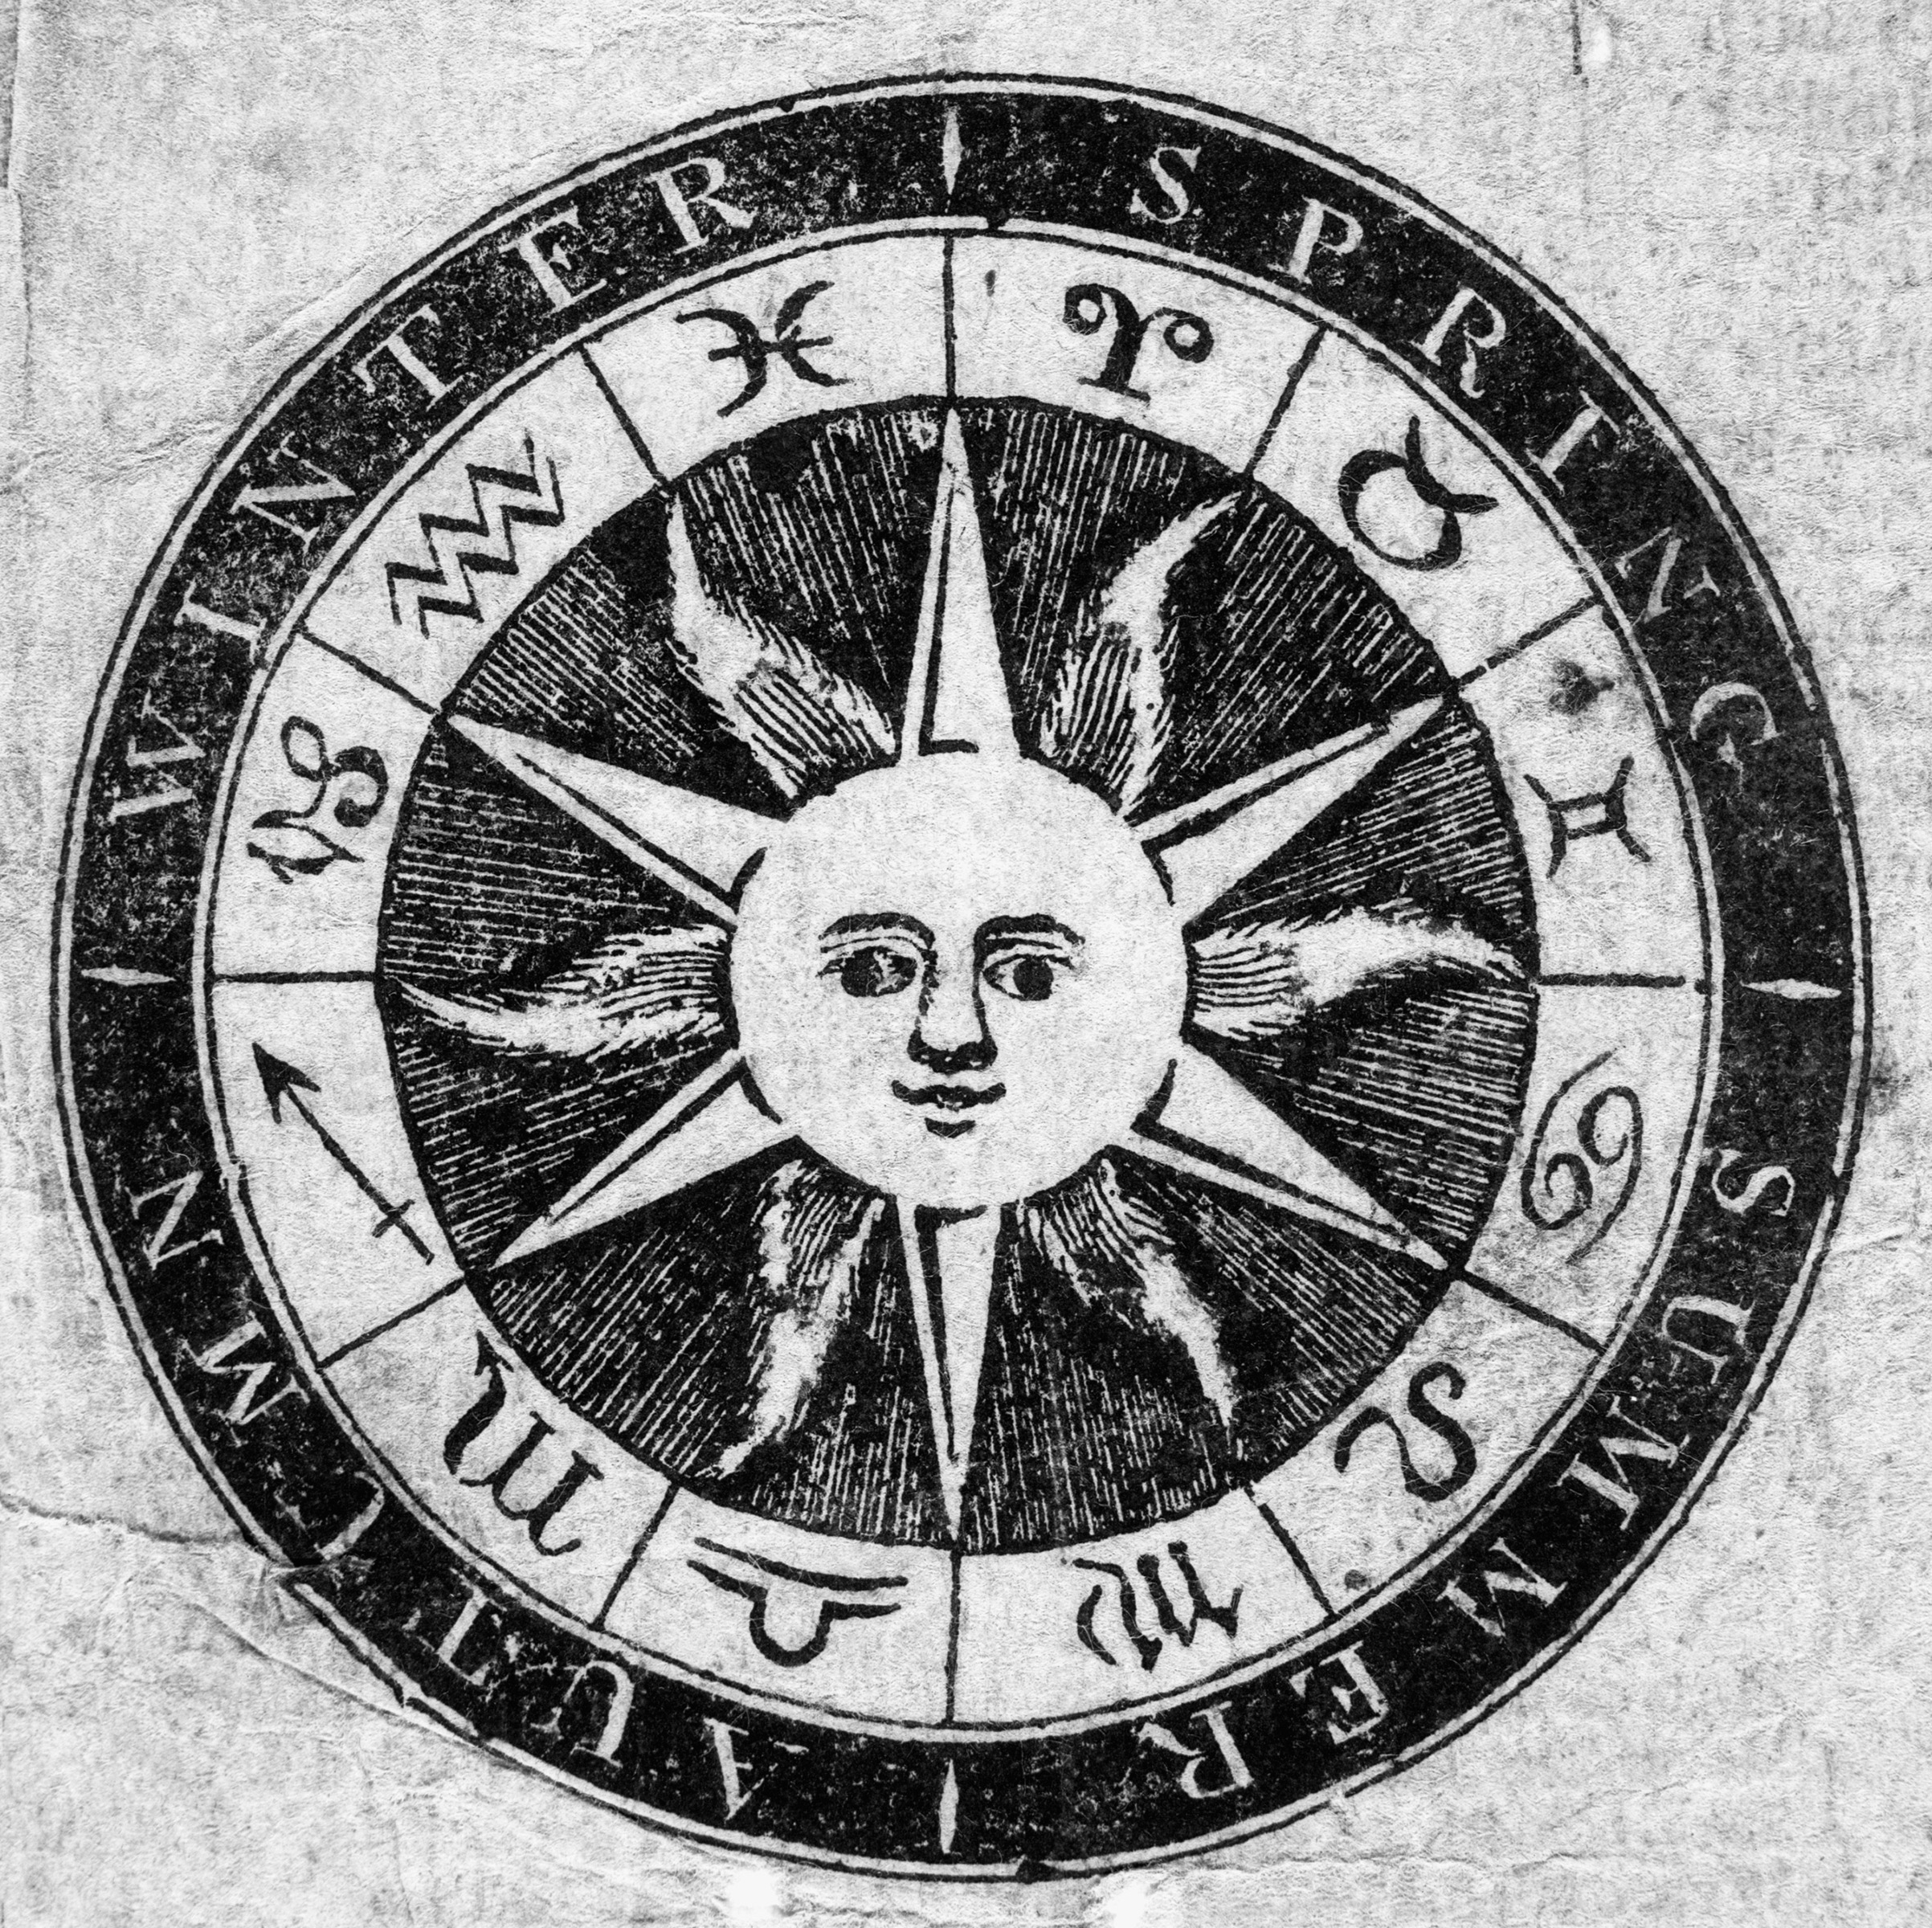 An image of the sun surrounded by a calendar showing seasons and the symbols of the zodiac that appear on the title page of an 1814 almanac written by Nathanael Low, M.D., and published by Munroe and Francis in Boston, Mass.